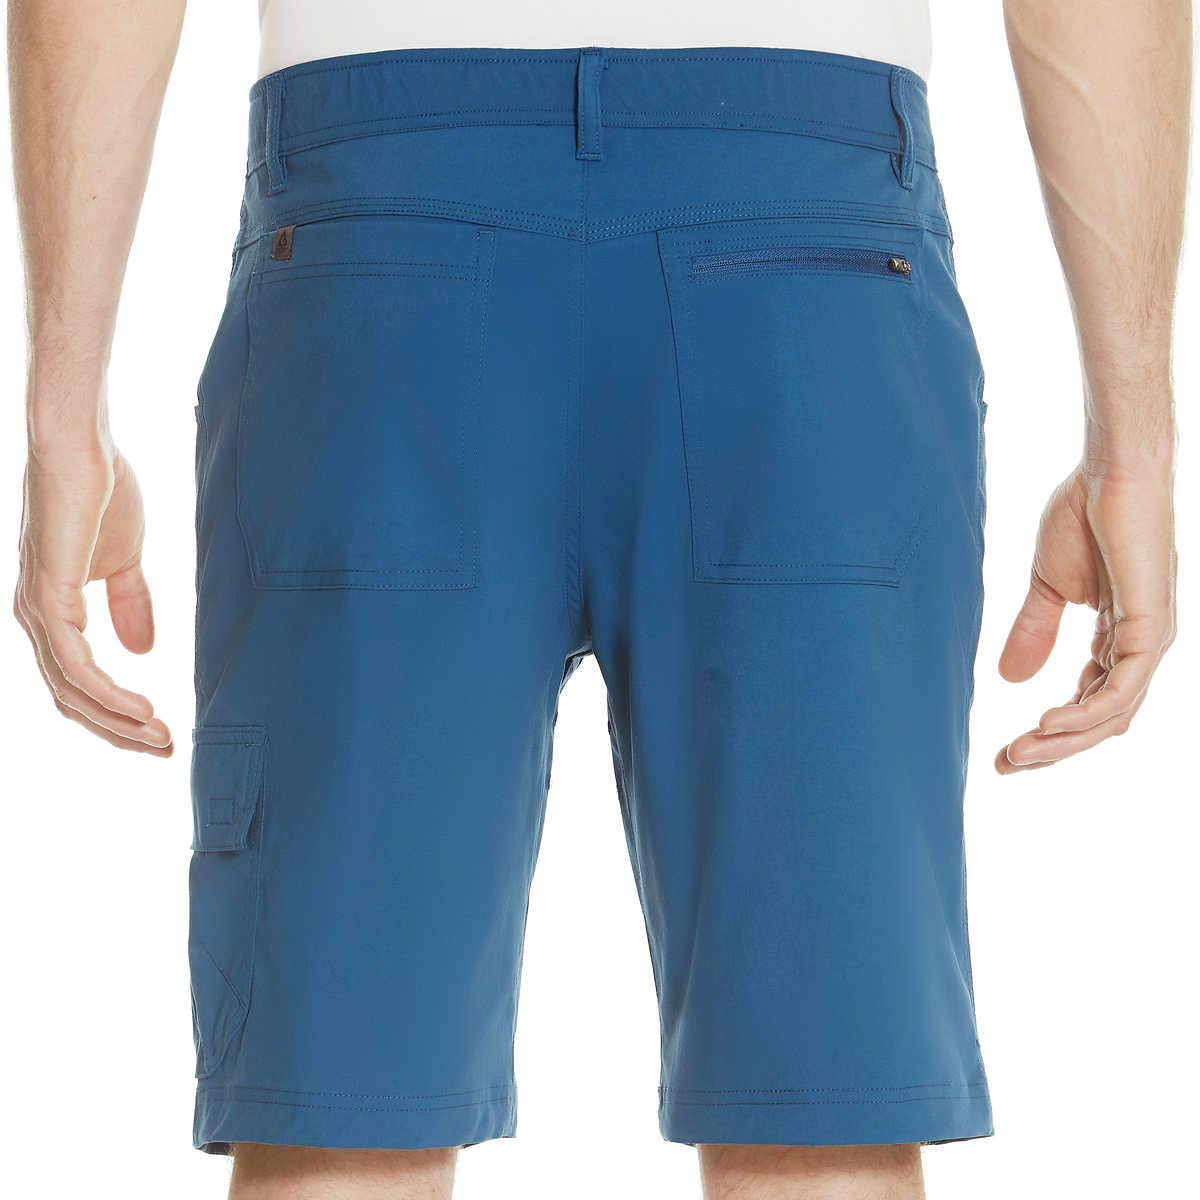 Gerry Men's Venture Flat Front Stretch Cargo Shorts, Variety (Mood Blue, 40) by Gerry